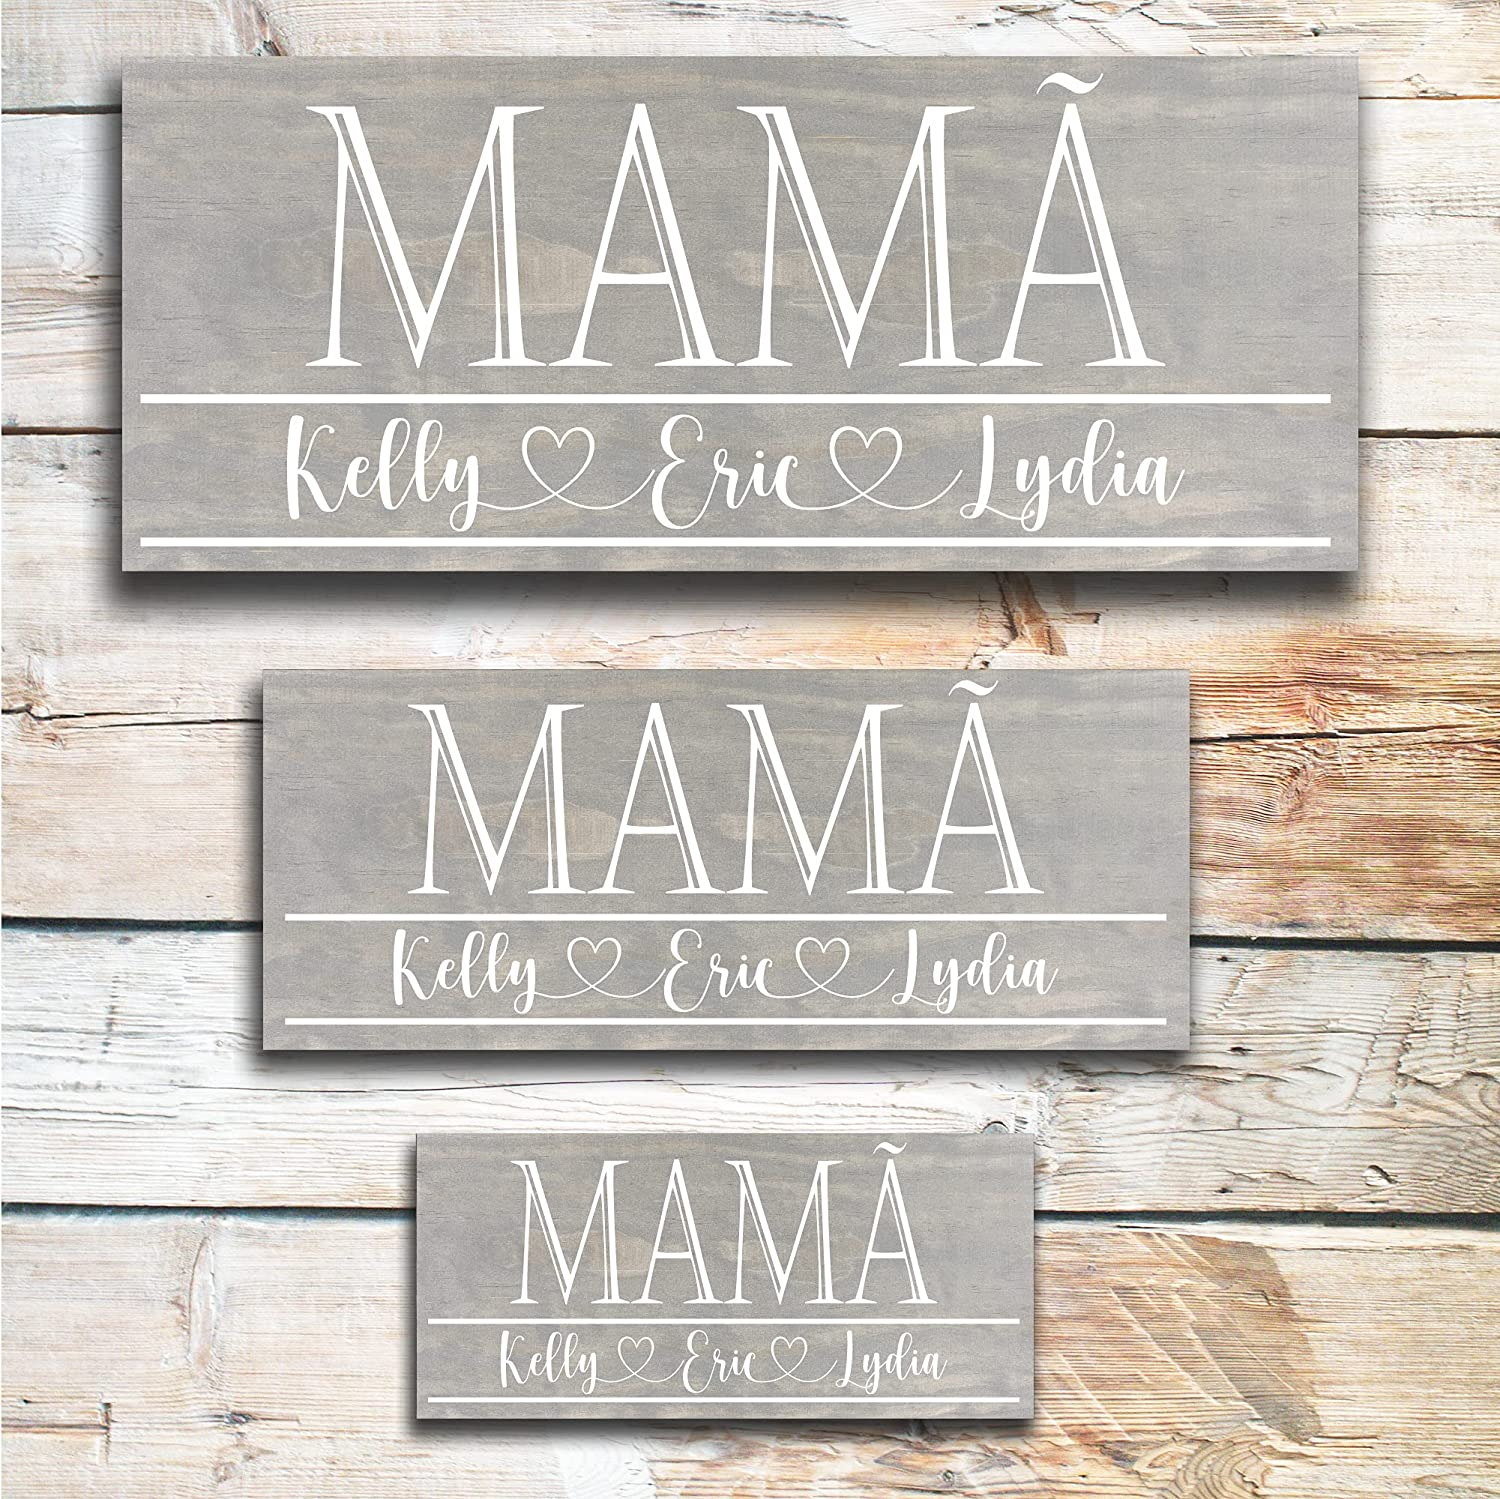 Mamã Grandma Mother's New Free Shipping Day Gif Personalized Gift New Free Shipping